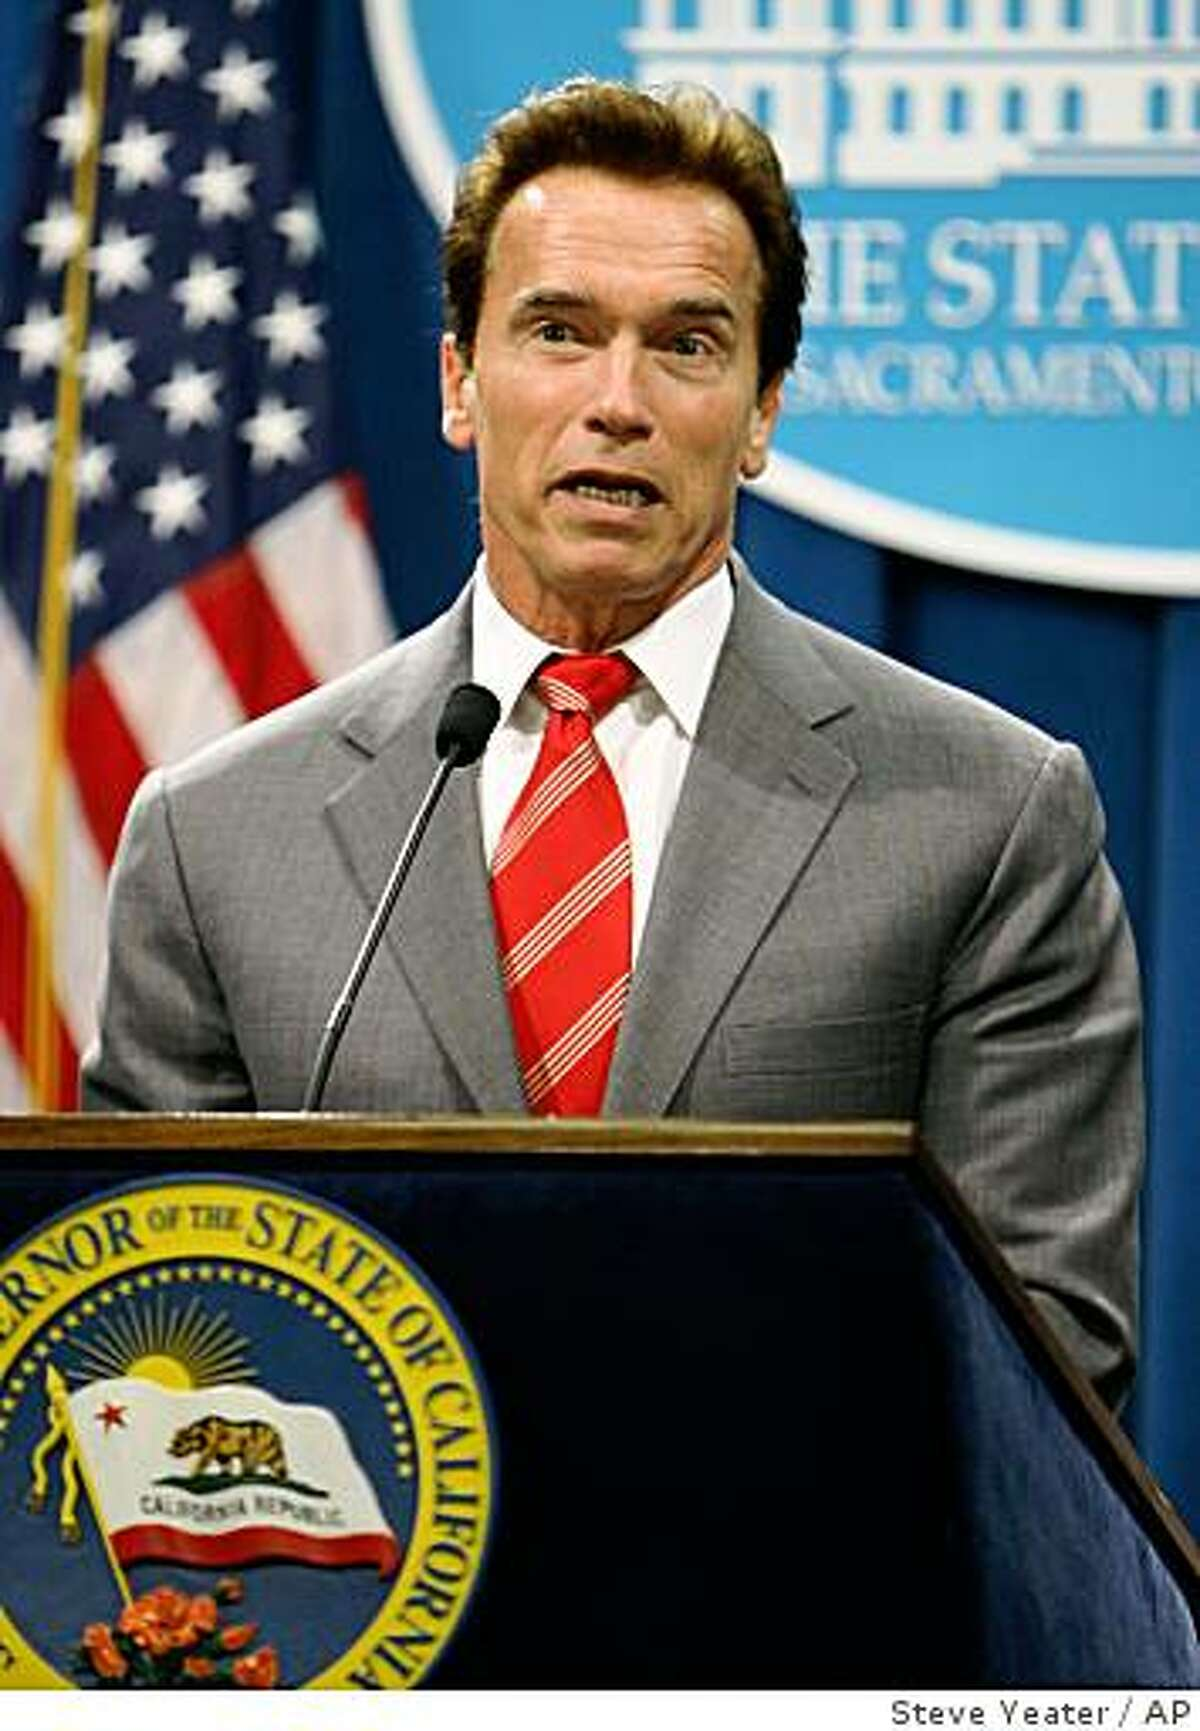 California Gov. Arnold Schwarzenegger talks about the tentative budget agreement with the legislature during a news conference at the Capitol in Sacramento, Calif., on Friday, Sept. 19, 2008.(AP Photo/Steve Yeater)